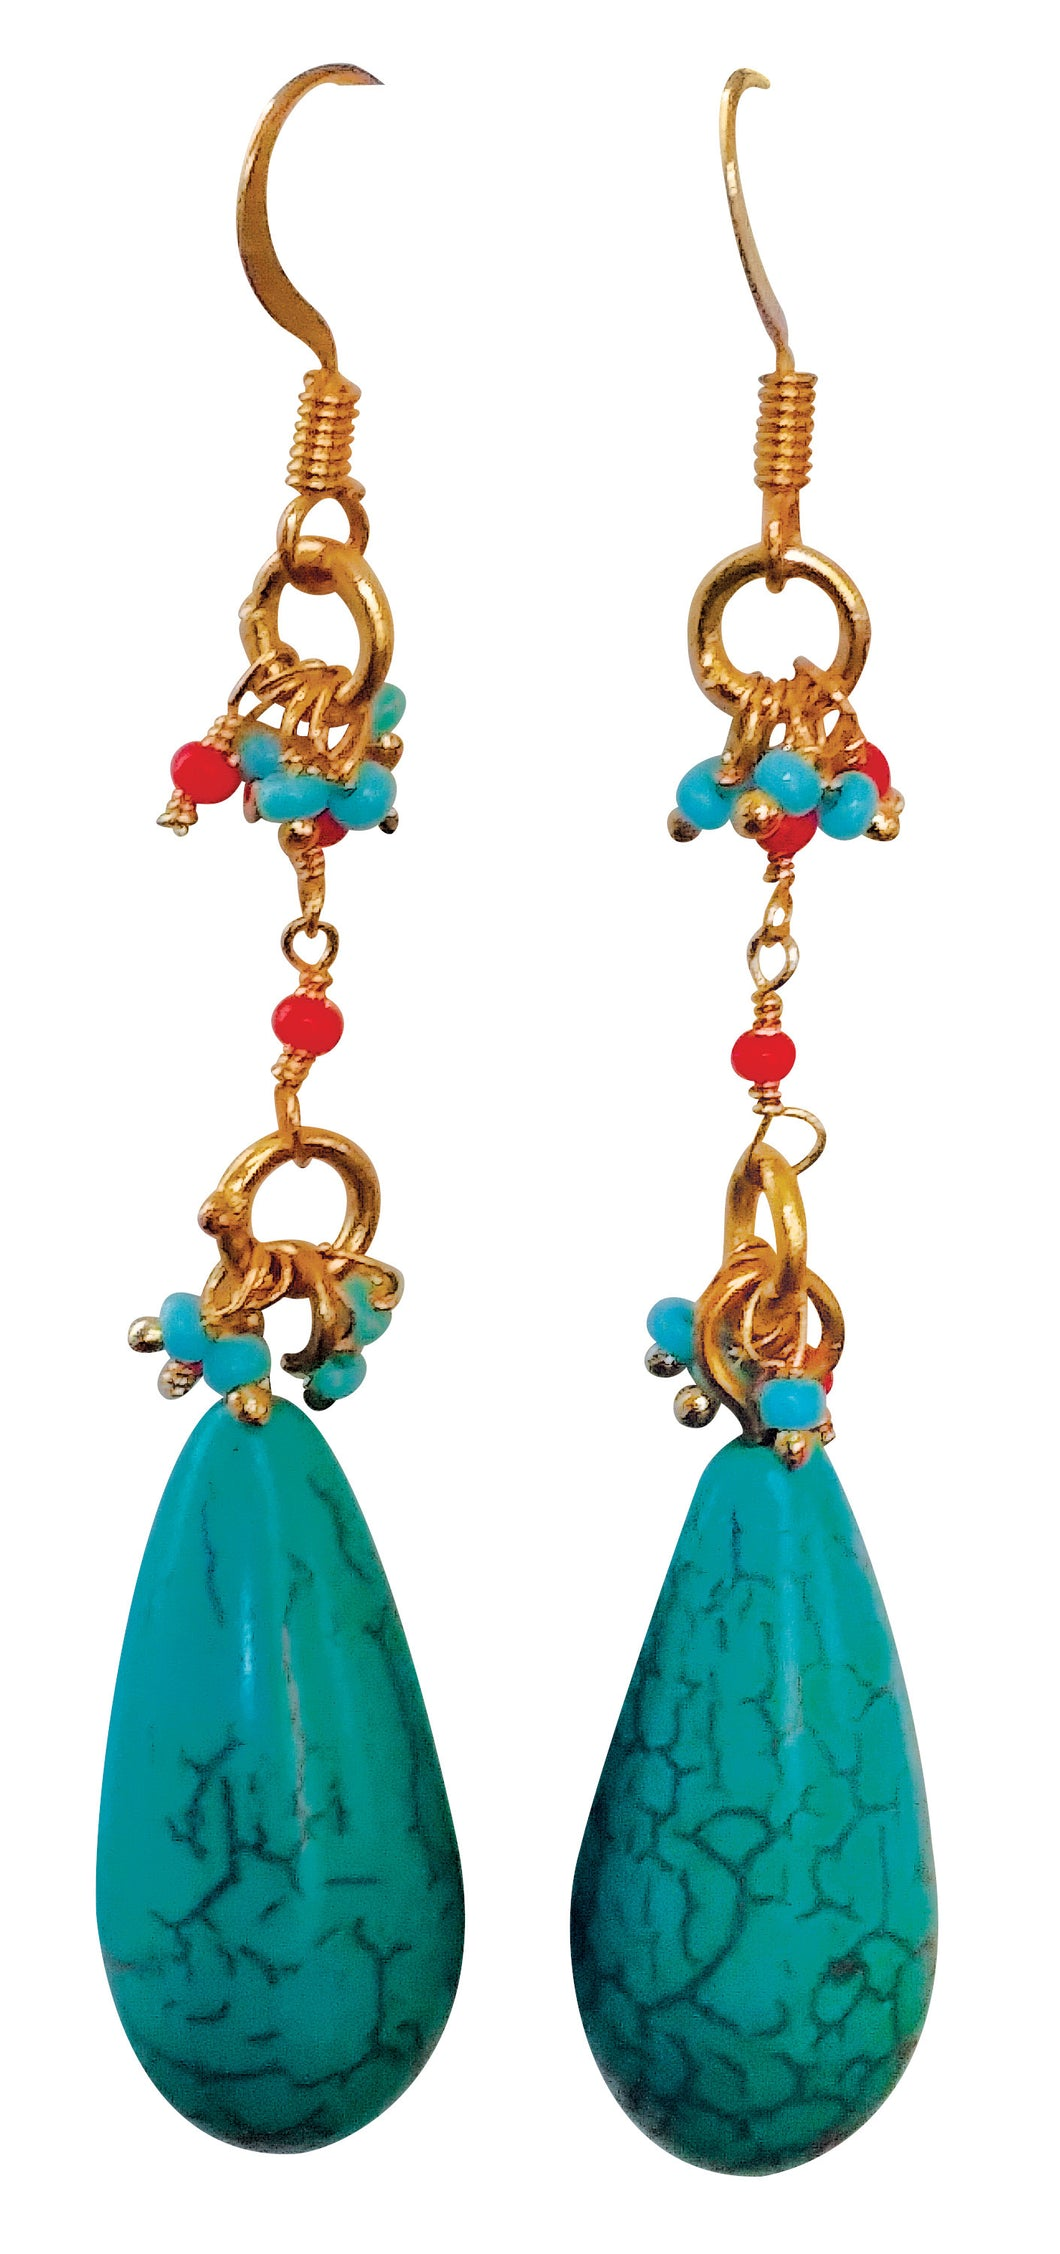 Morocco - Earrings - Funraise